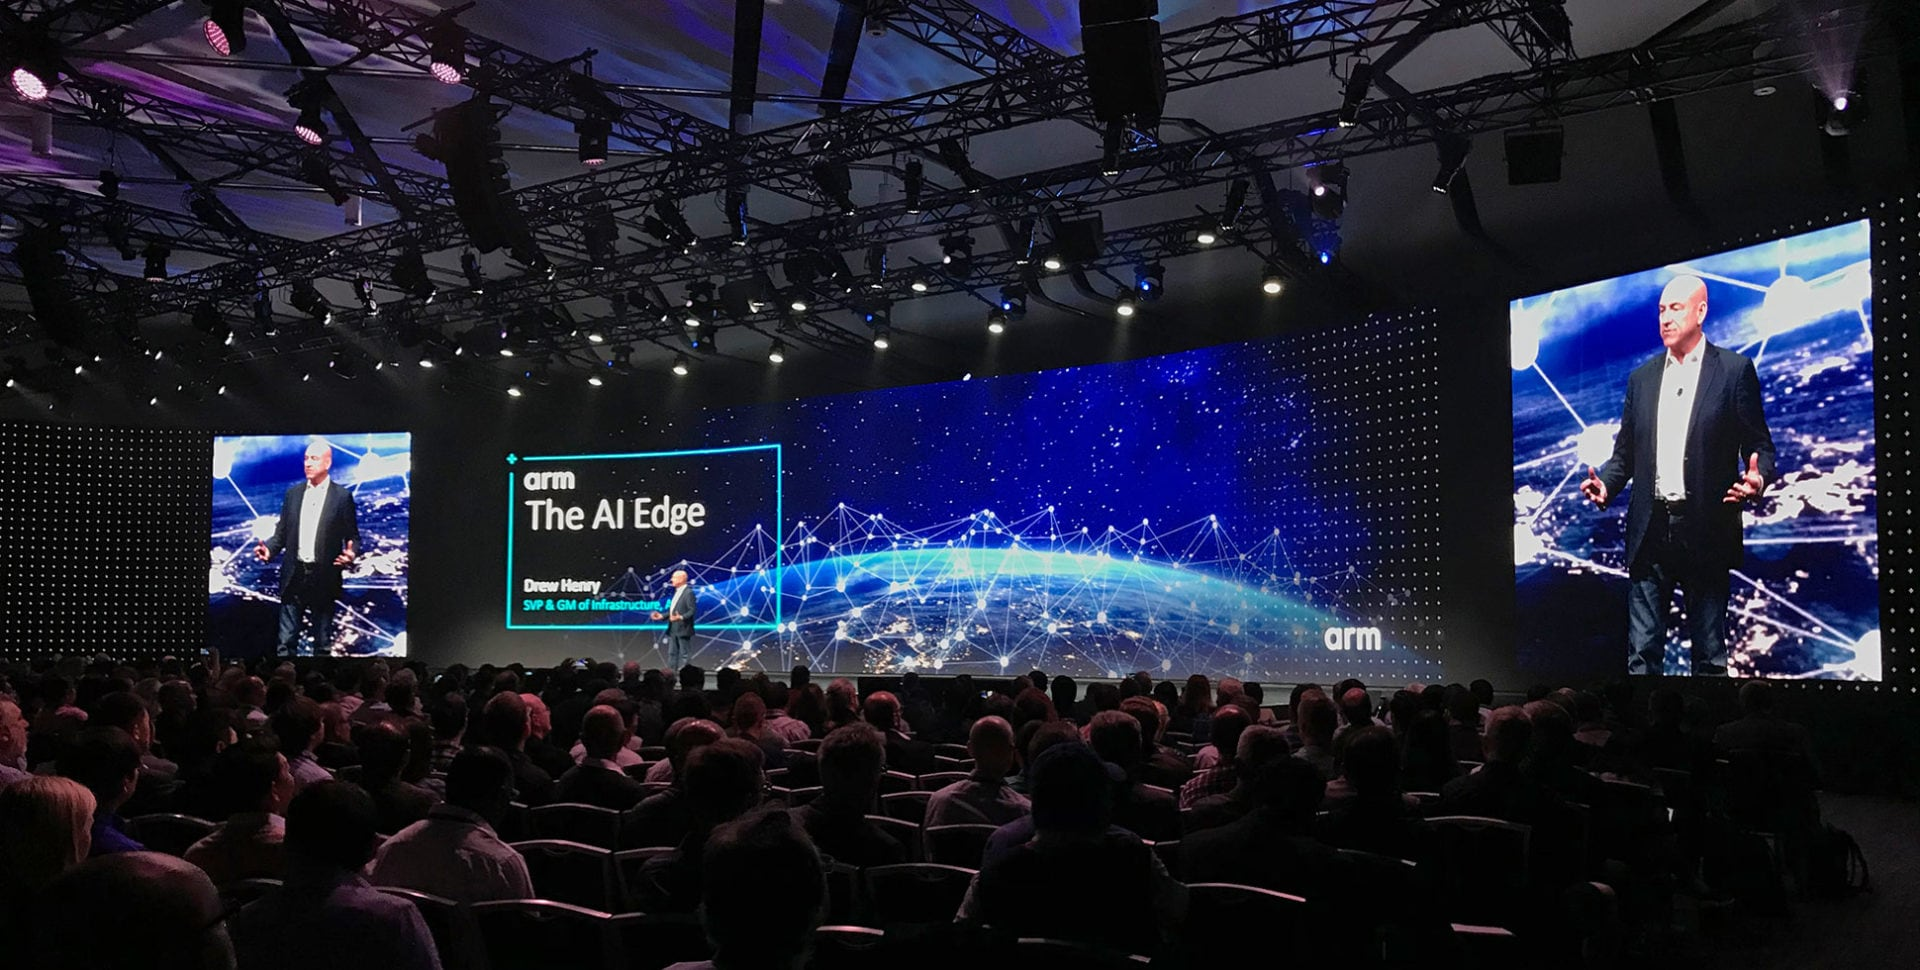 Drew Henry on stage at Arm Techcon 2019